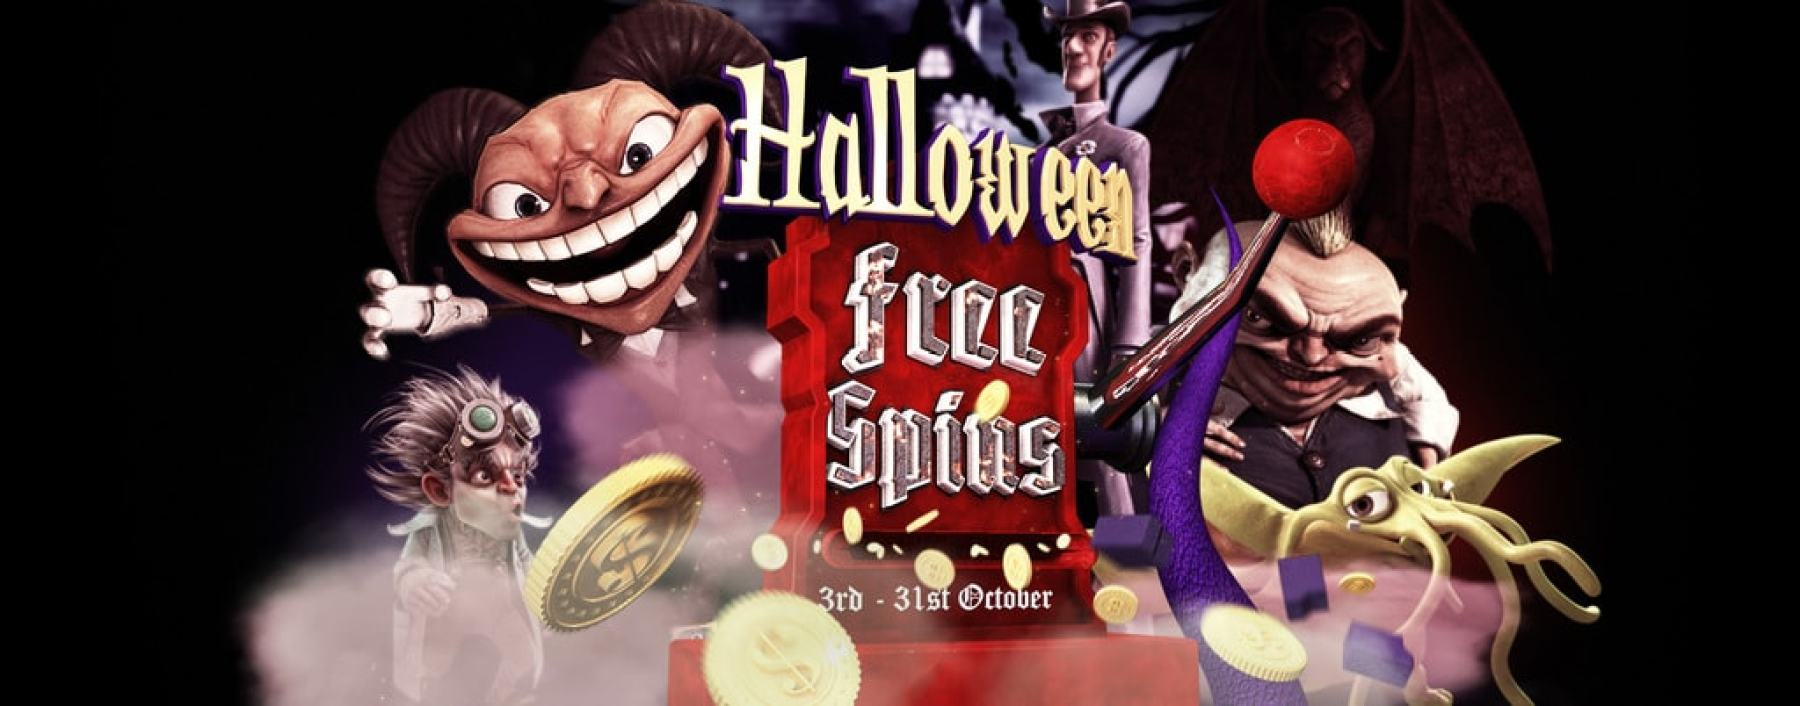 Rich Casino Celebrate the spookies occasion of Halloween with Free Spins Tournament